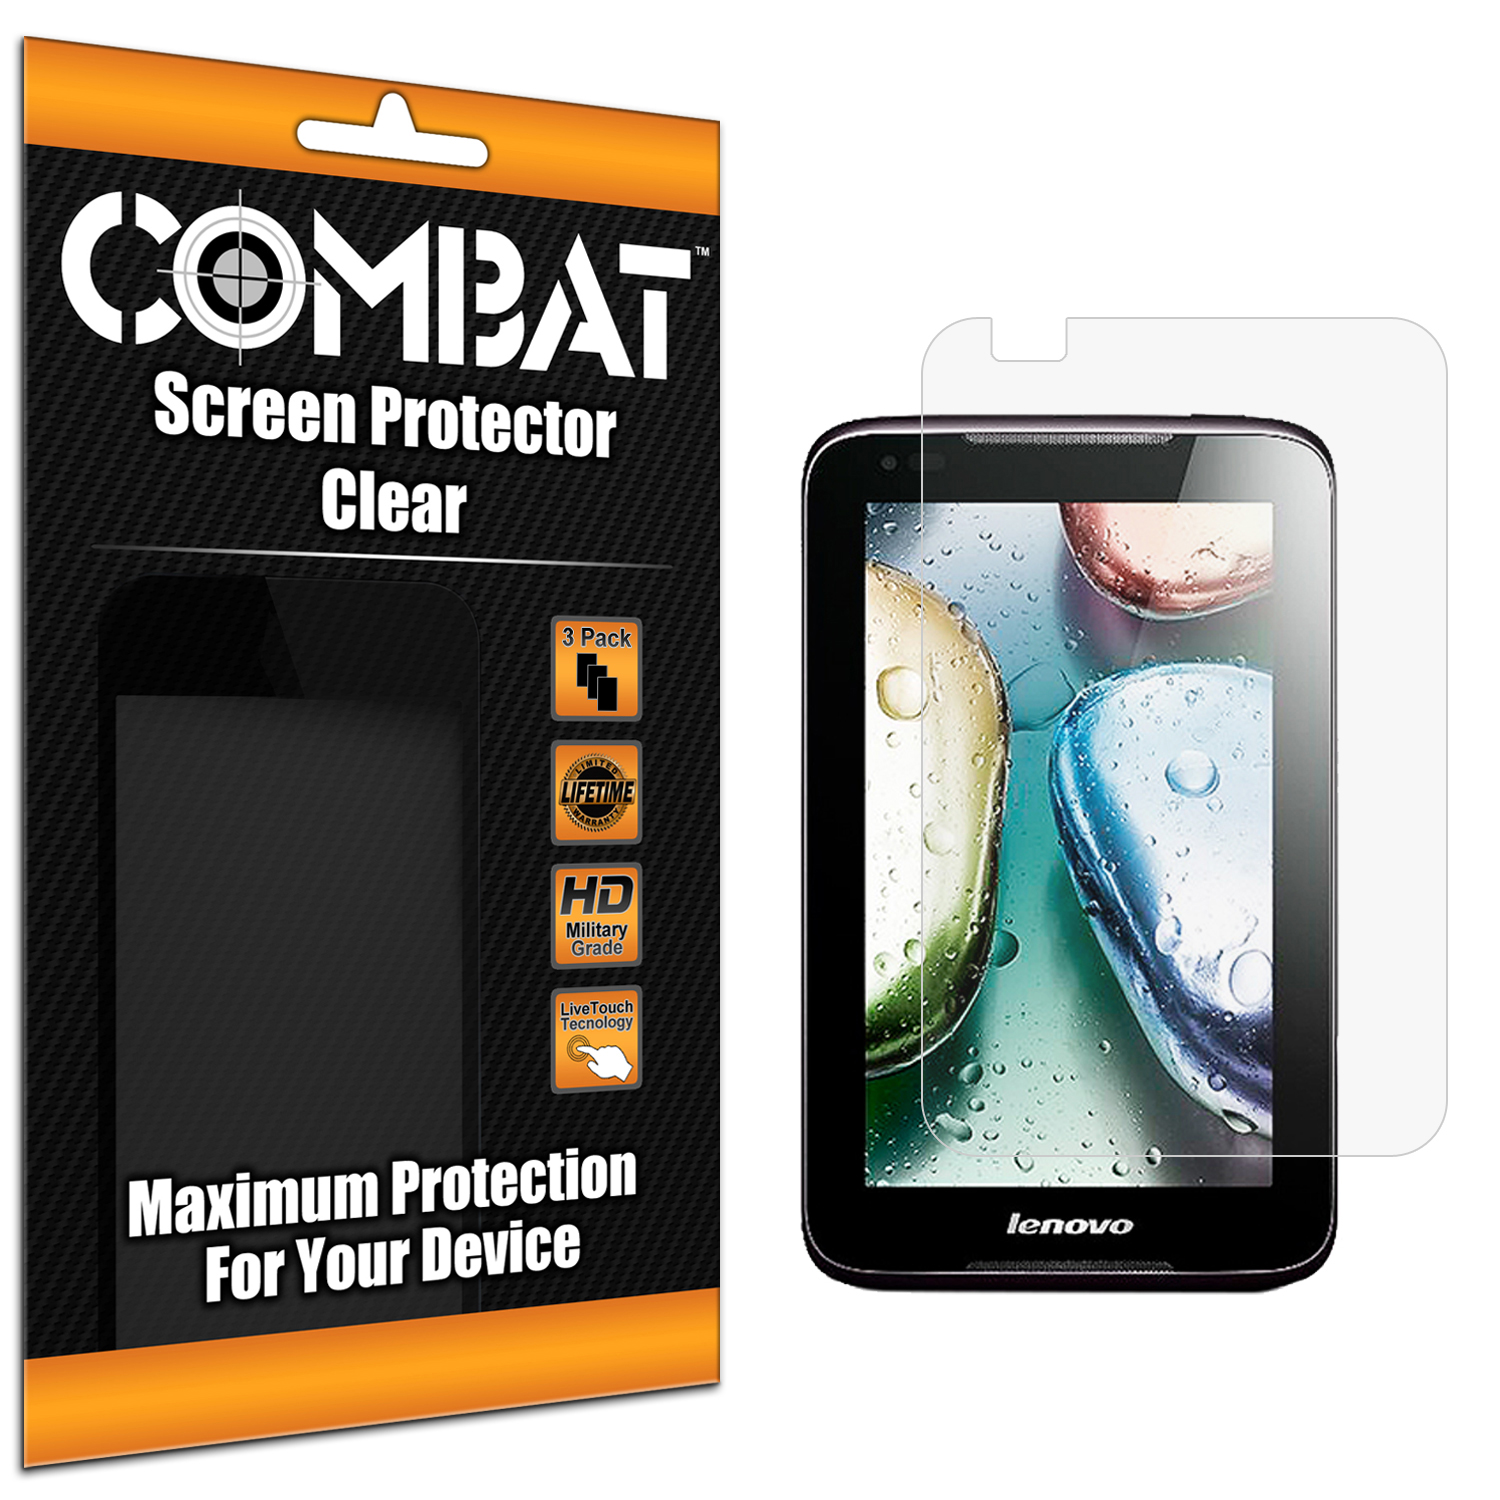 Lenovo IdeaTab A1000 Combat 3 Pack HD Clear Screen Protector